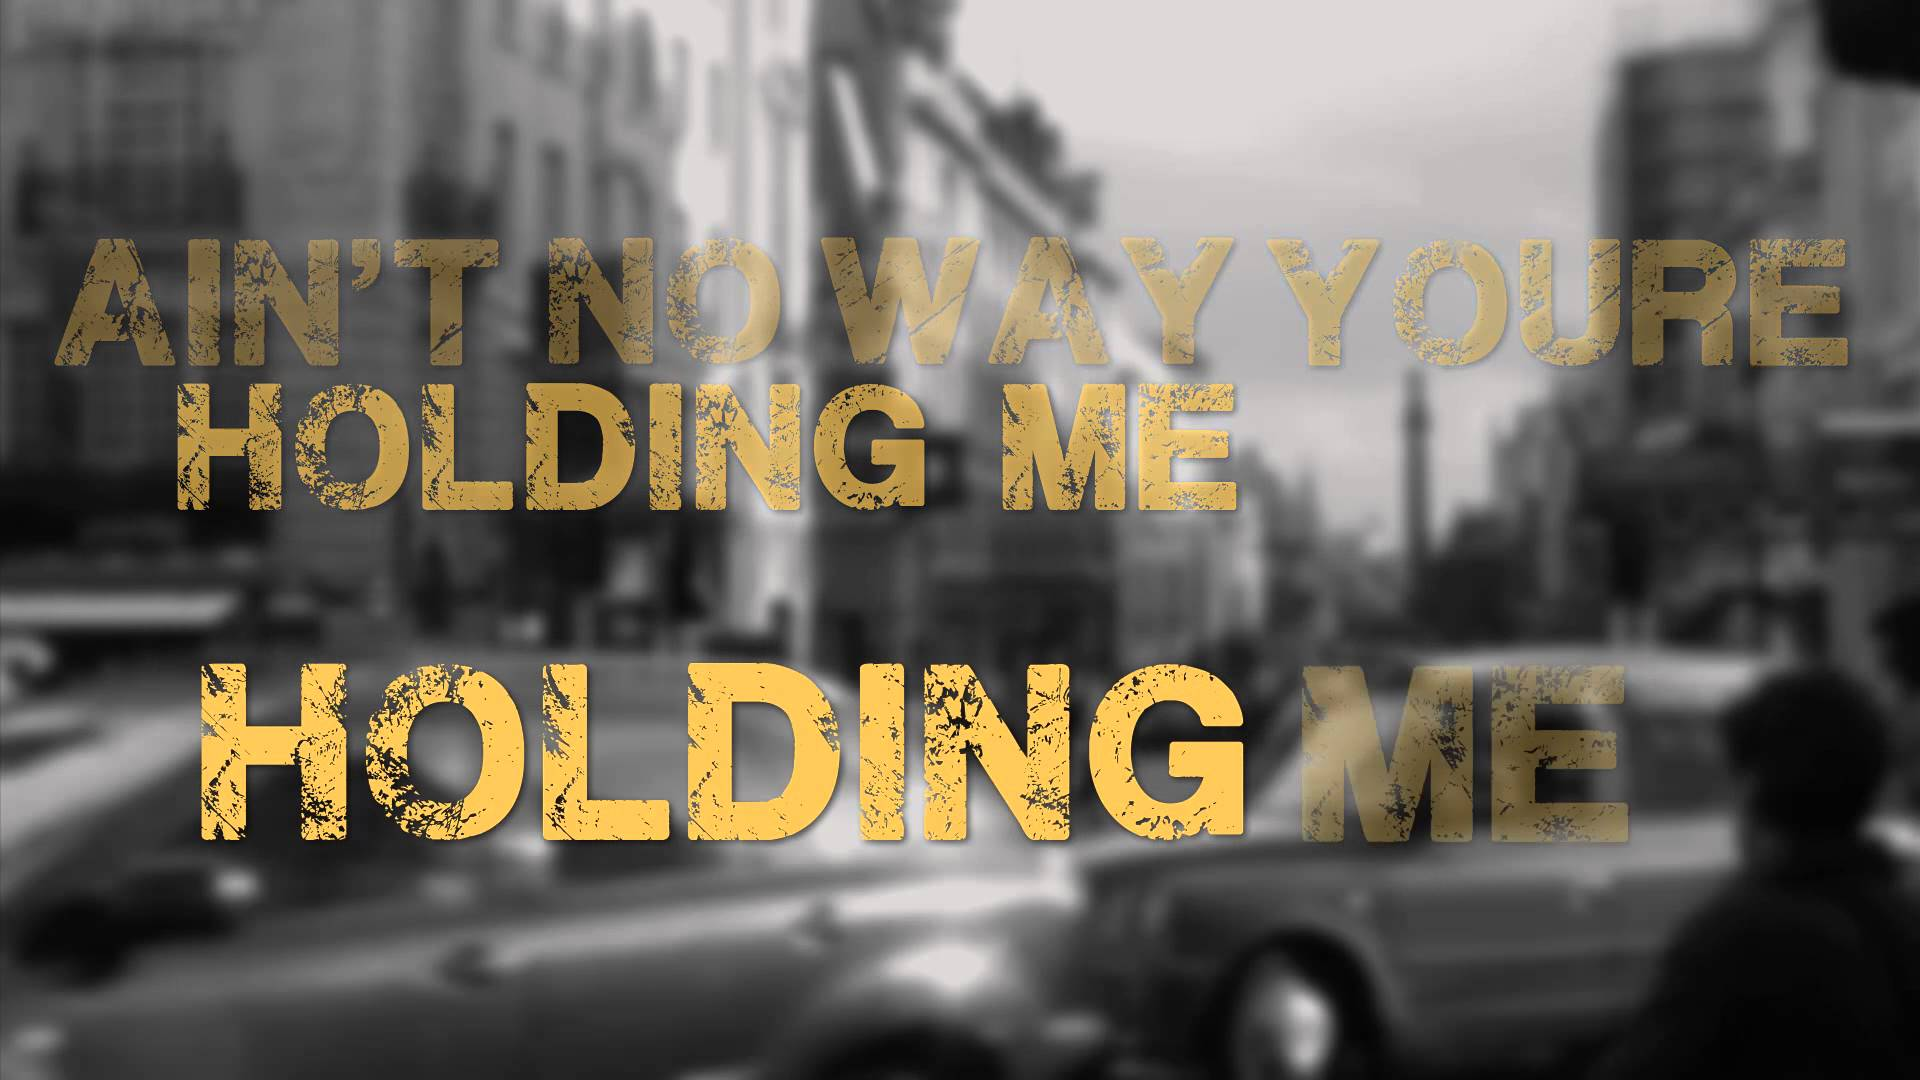 J.Appiah Ft Mic Righteous – Moving In (Official Lyric Video)